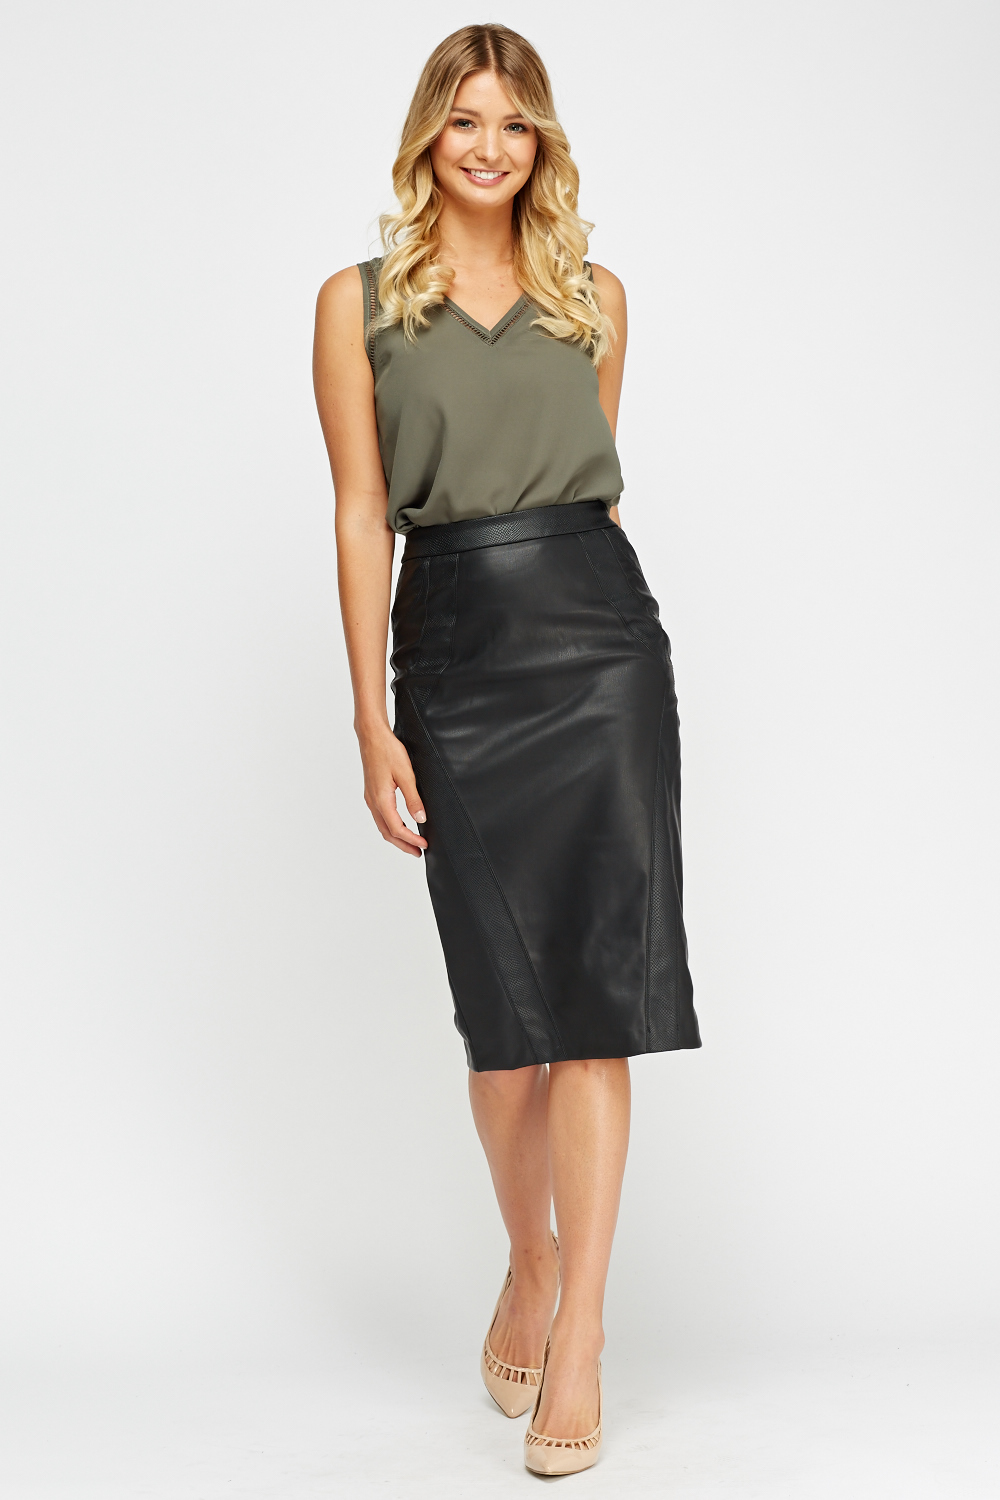 River Island faux leather midi skirt in black. £ Boohoo leather look midi skirt in black. £ Warehouse faux leather a-line wrap mini skirt in black. £ River Island faux leather zip detail skirt in black. £ 2NDDAY patent skirt. £ ASOS DESIGN leather look mini skirt .